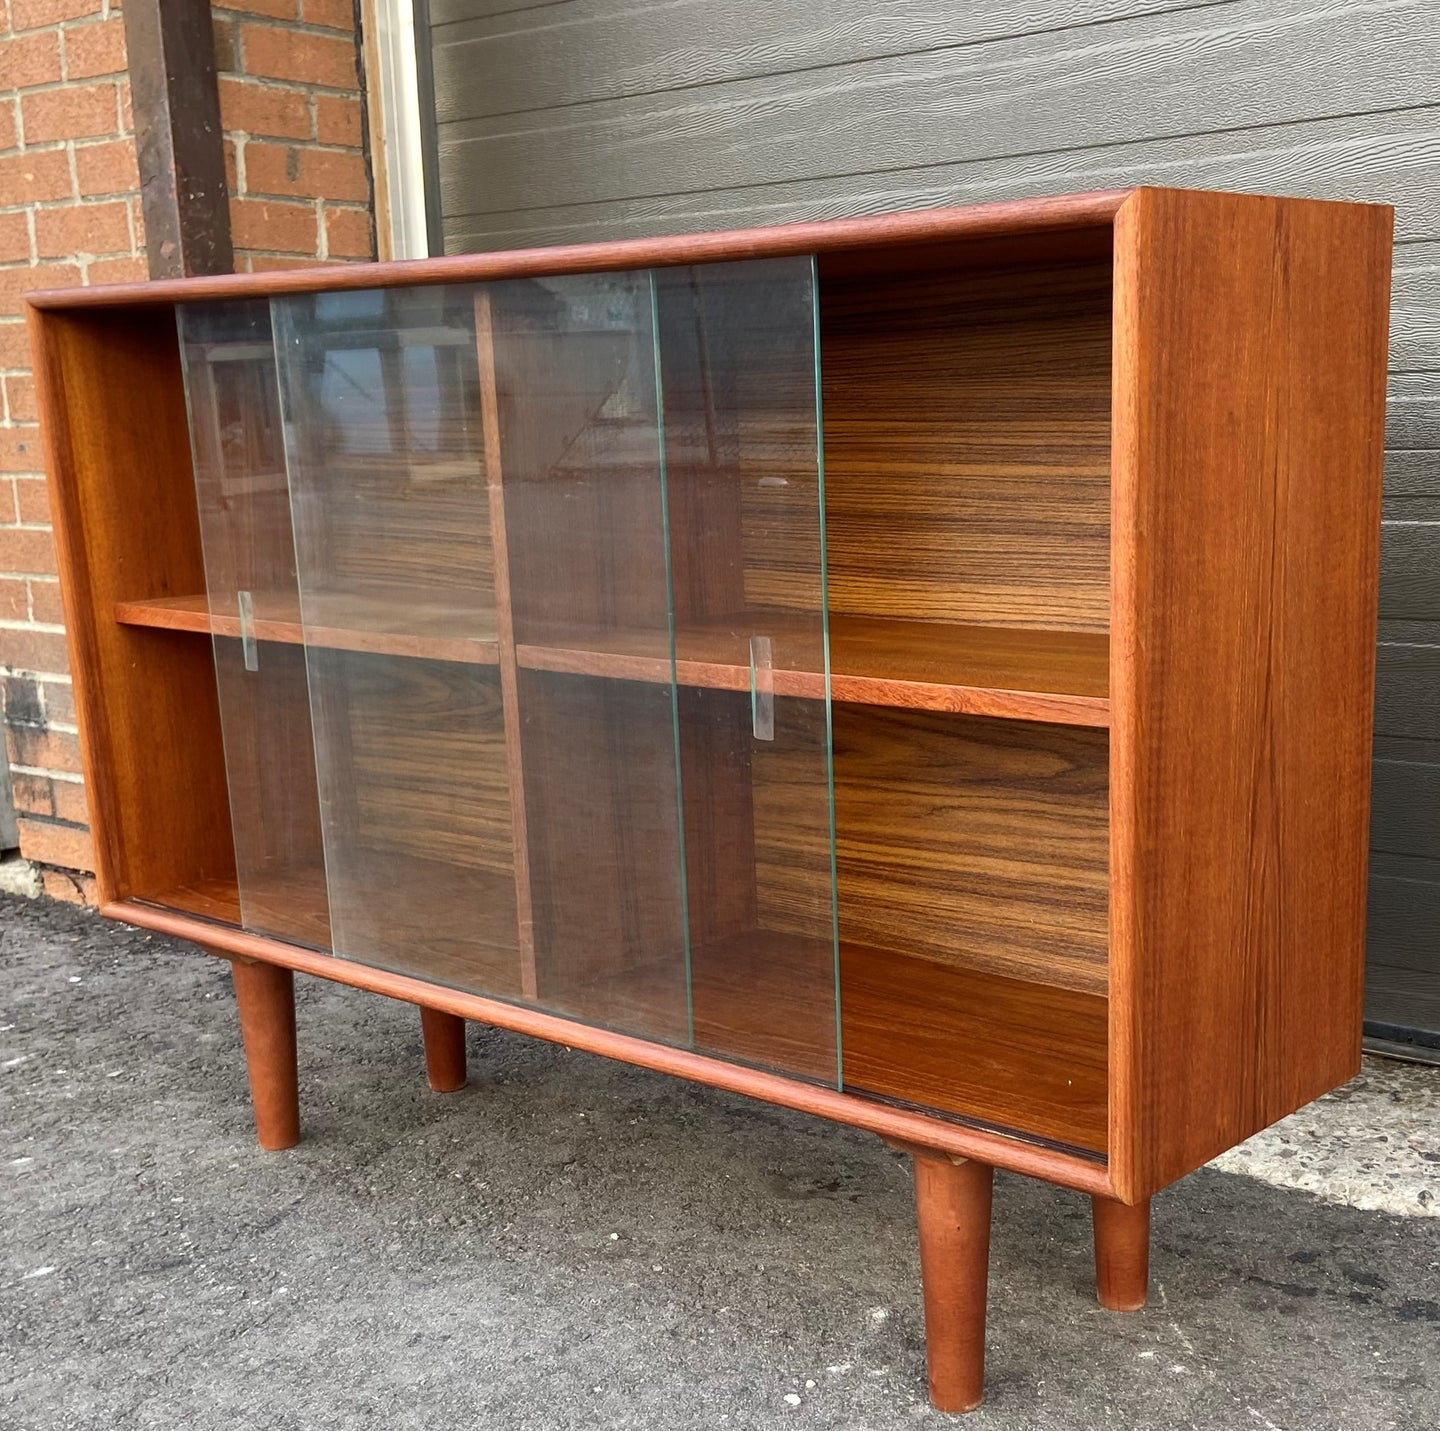 REFINISHED Danish MCM Teak Display Bookcase 47.5